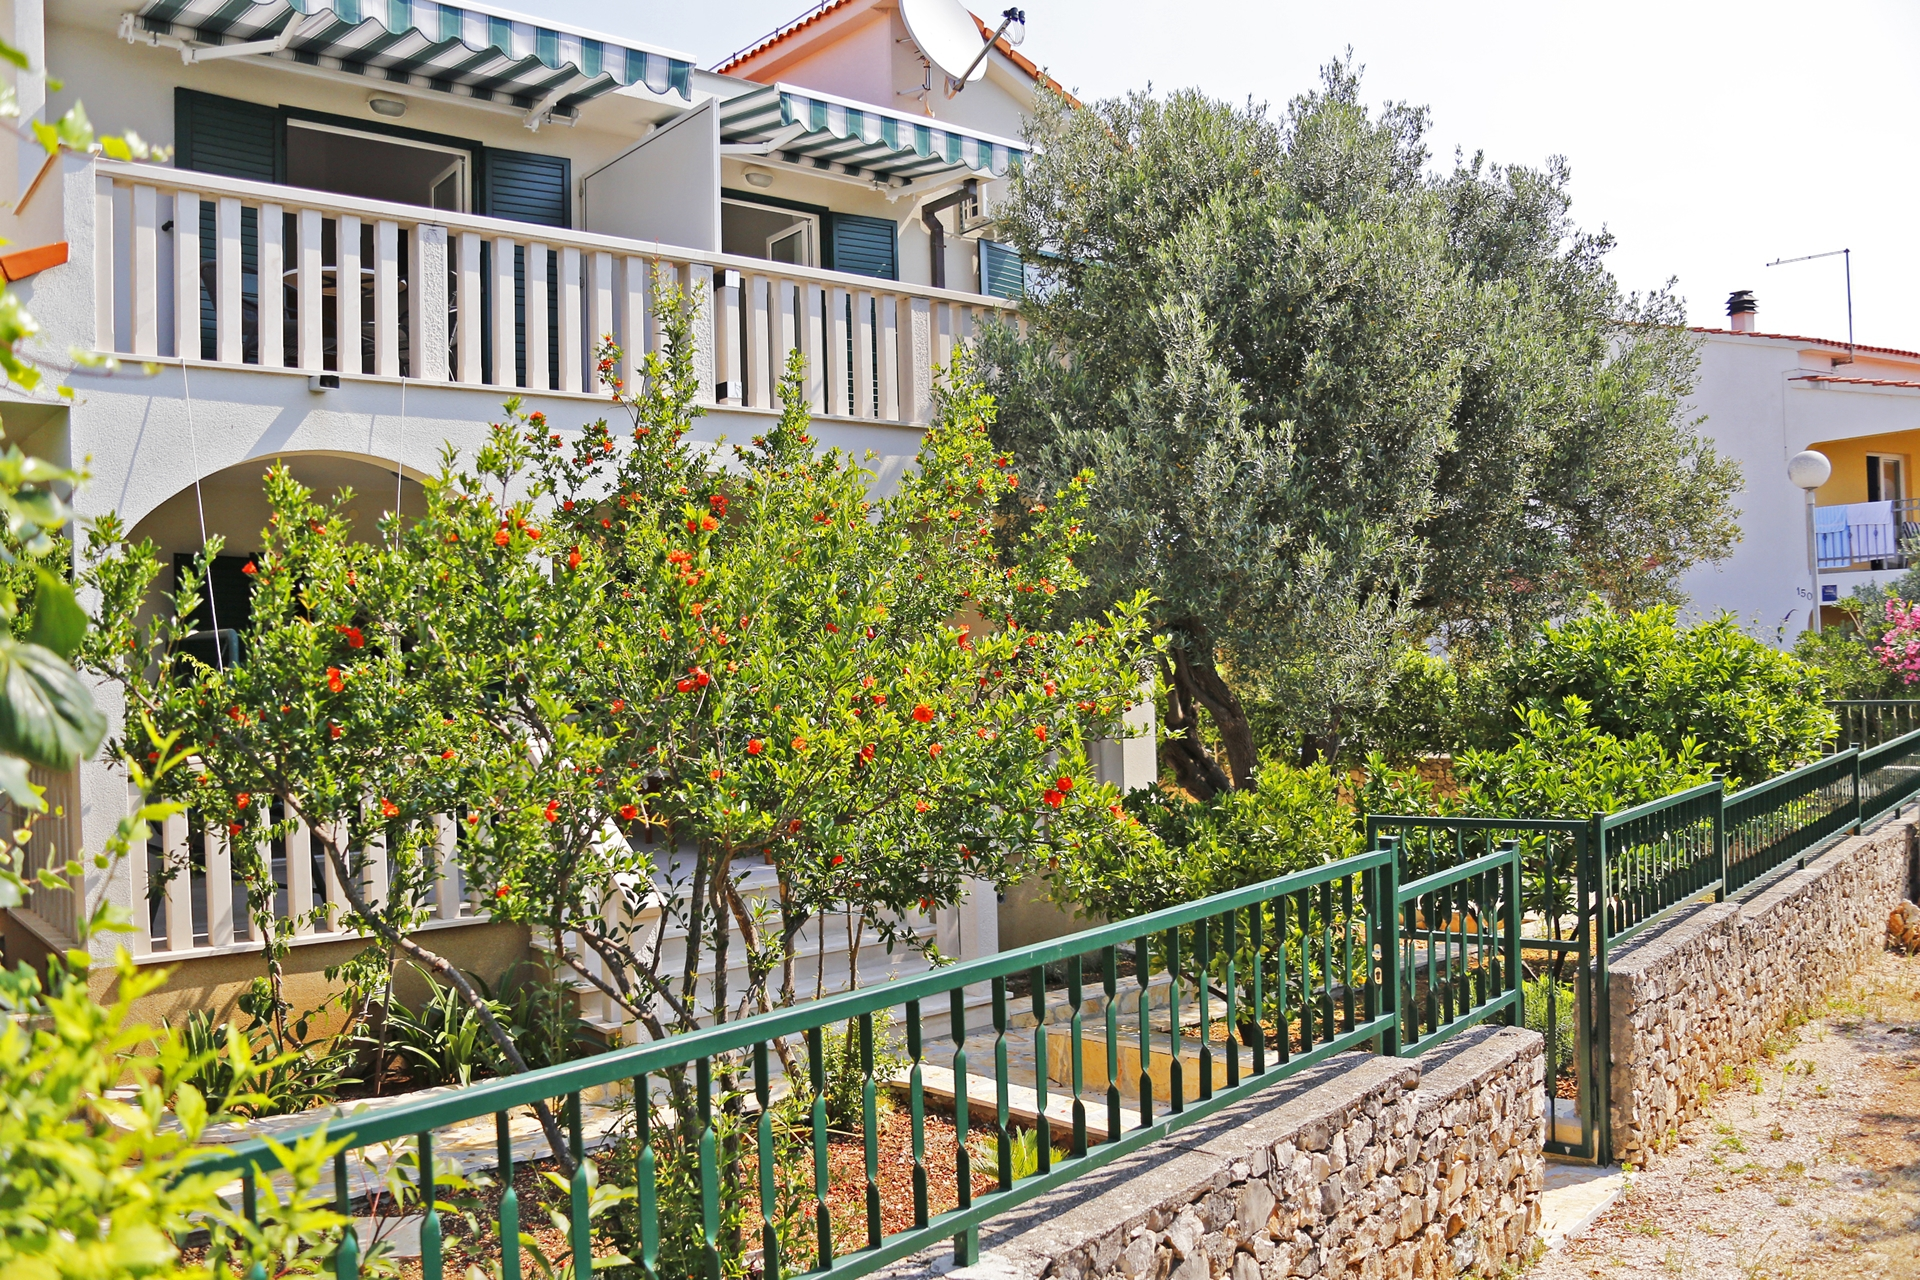 36524 - Cove Stivasnica (Razanj) - Accommodation in coves Croatia